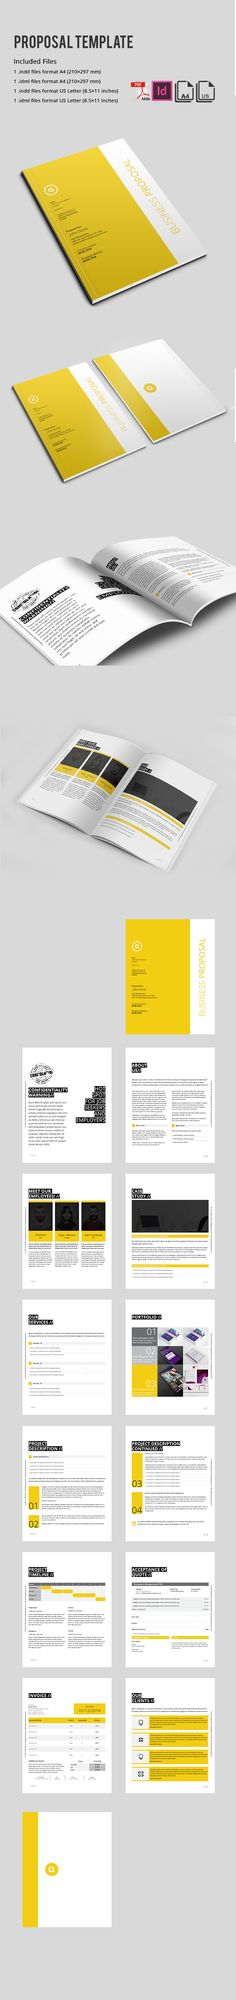 Proposal Template Proposal templates, Project proposal and - photography proposal template